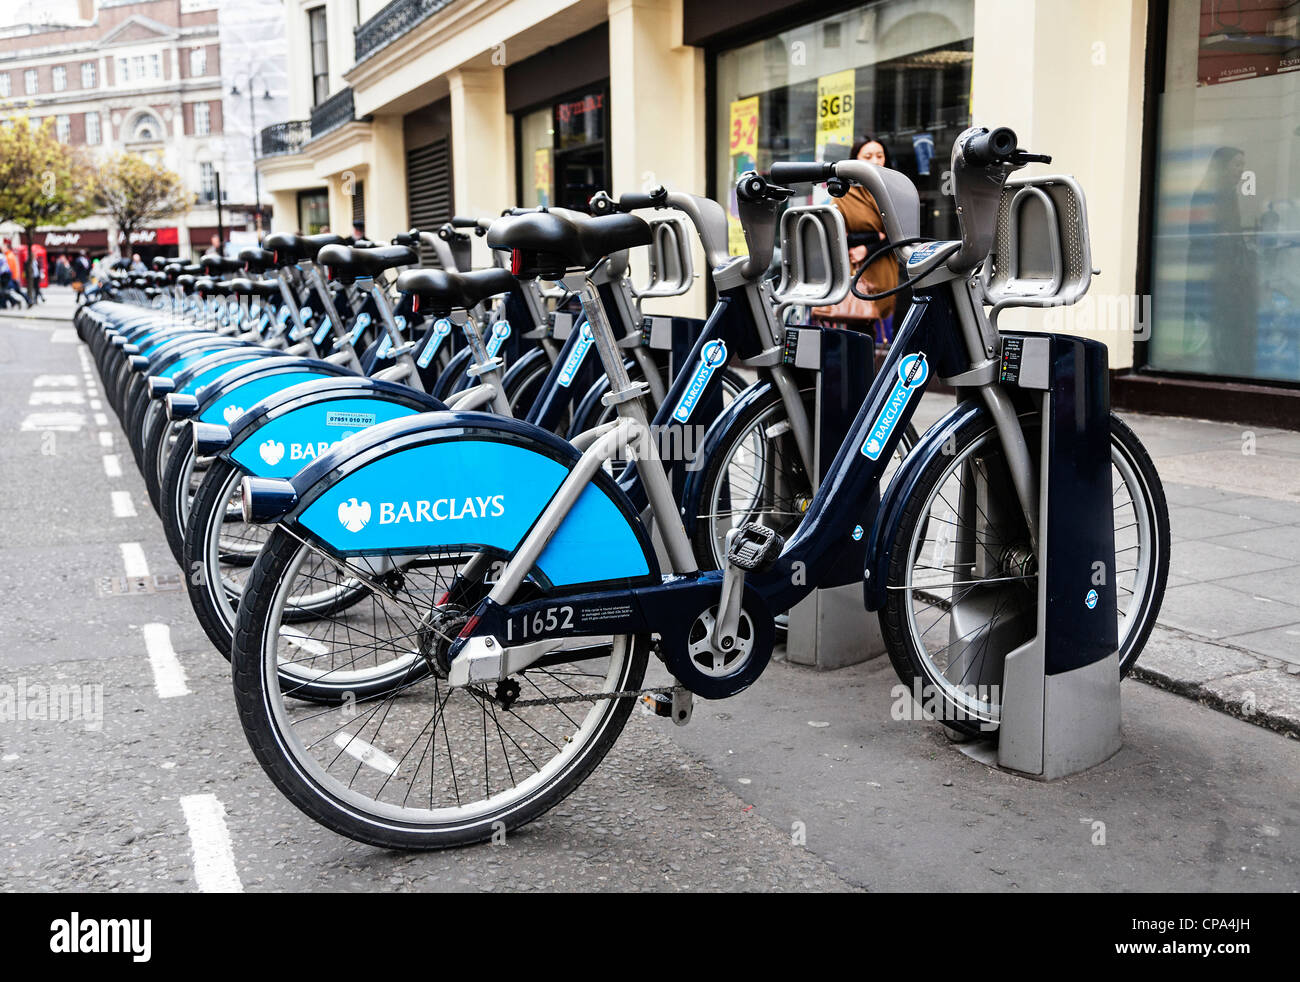 Barclays Cycle Hire docking station, Boris bikes, London, England. - Stock Image